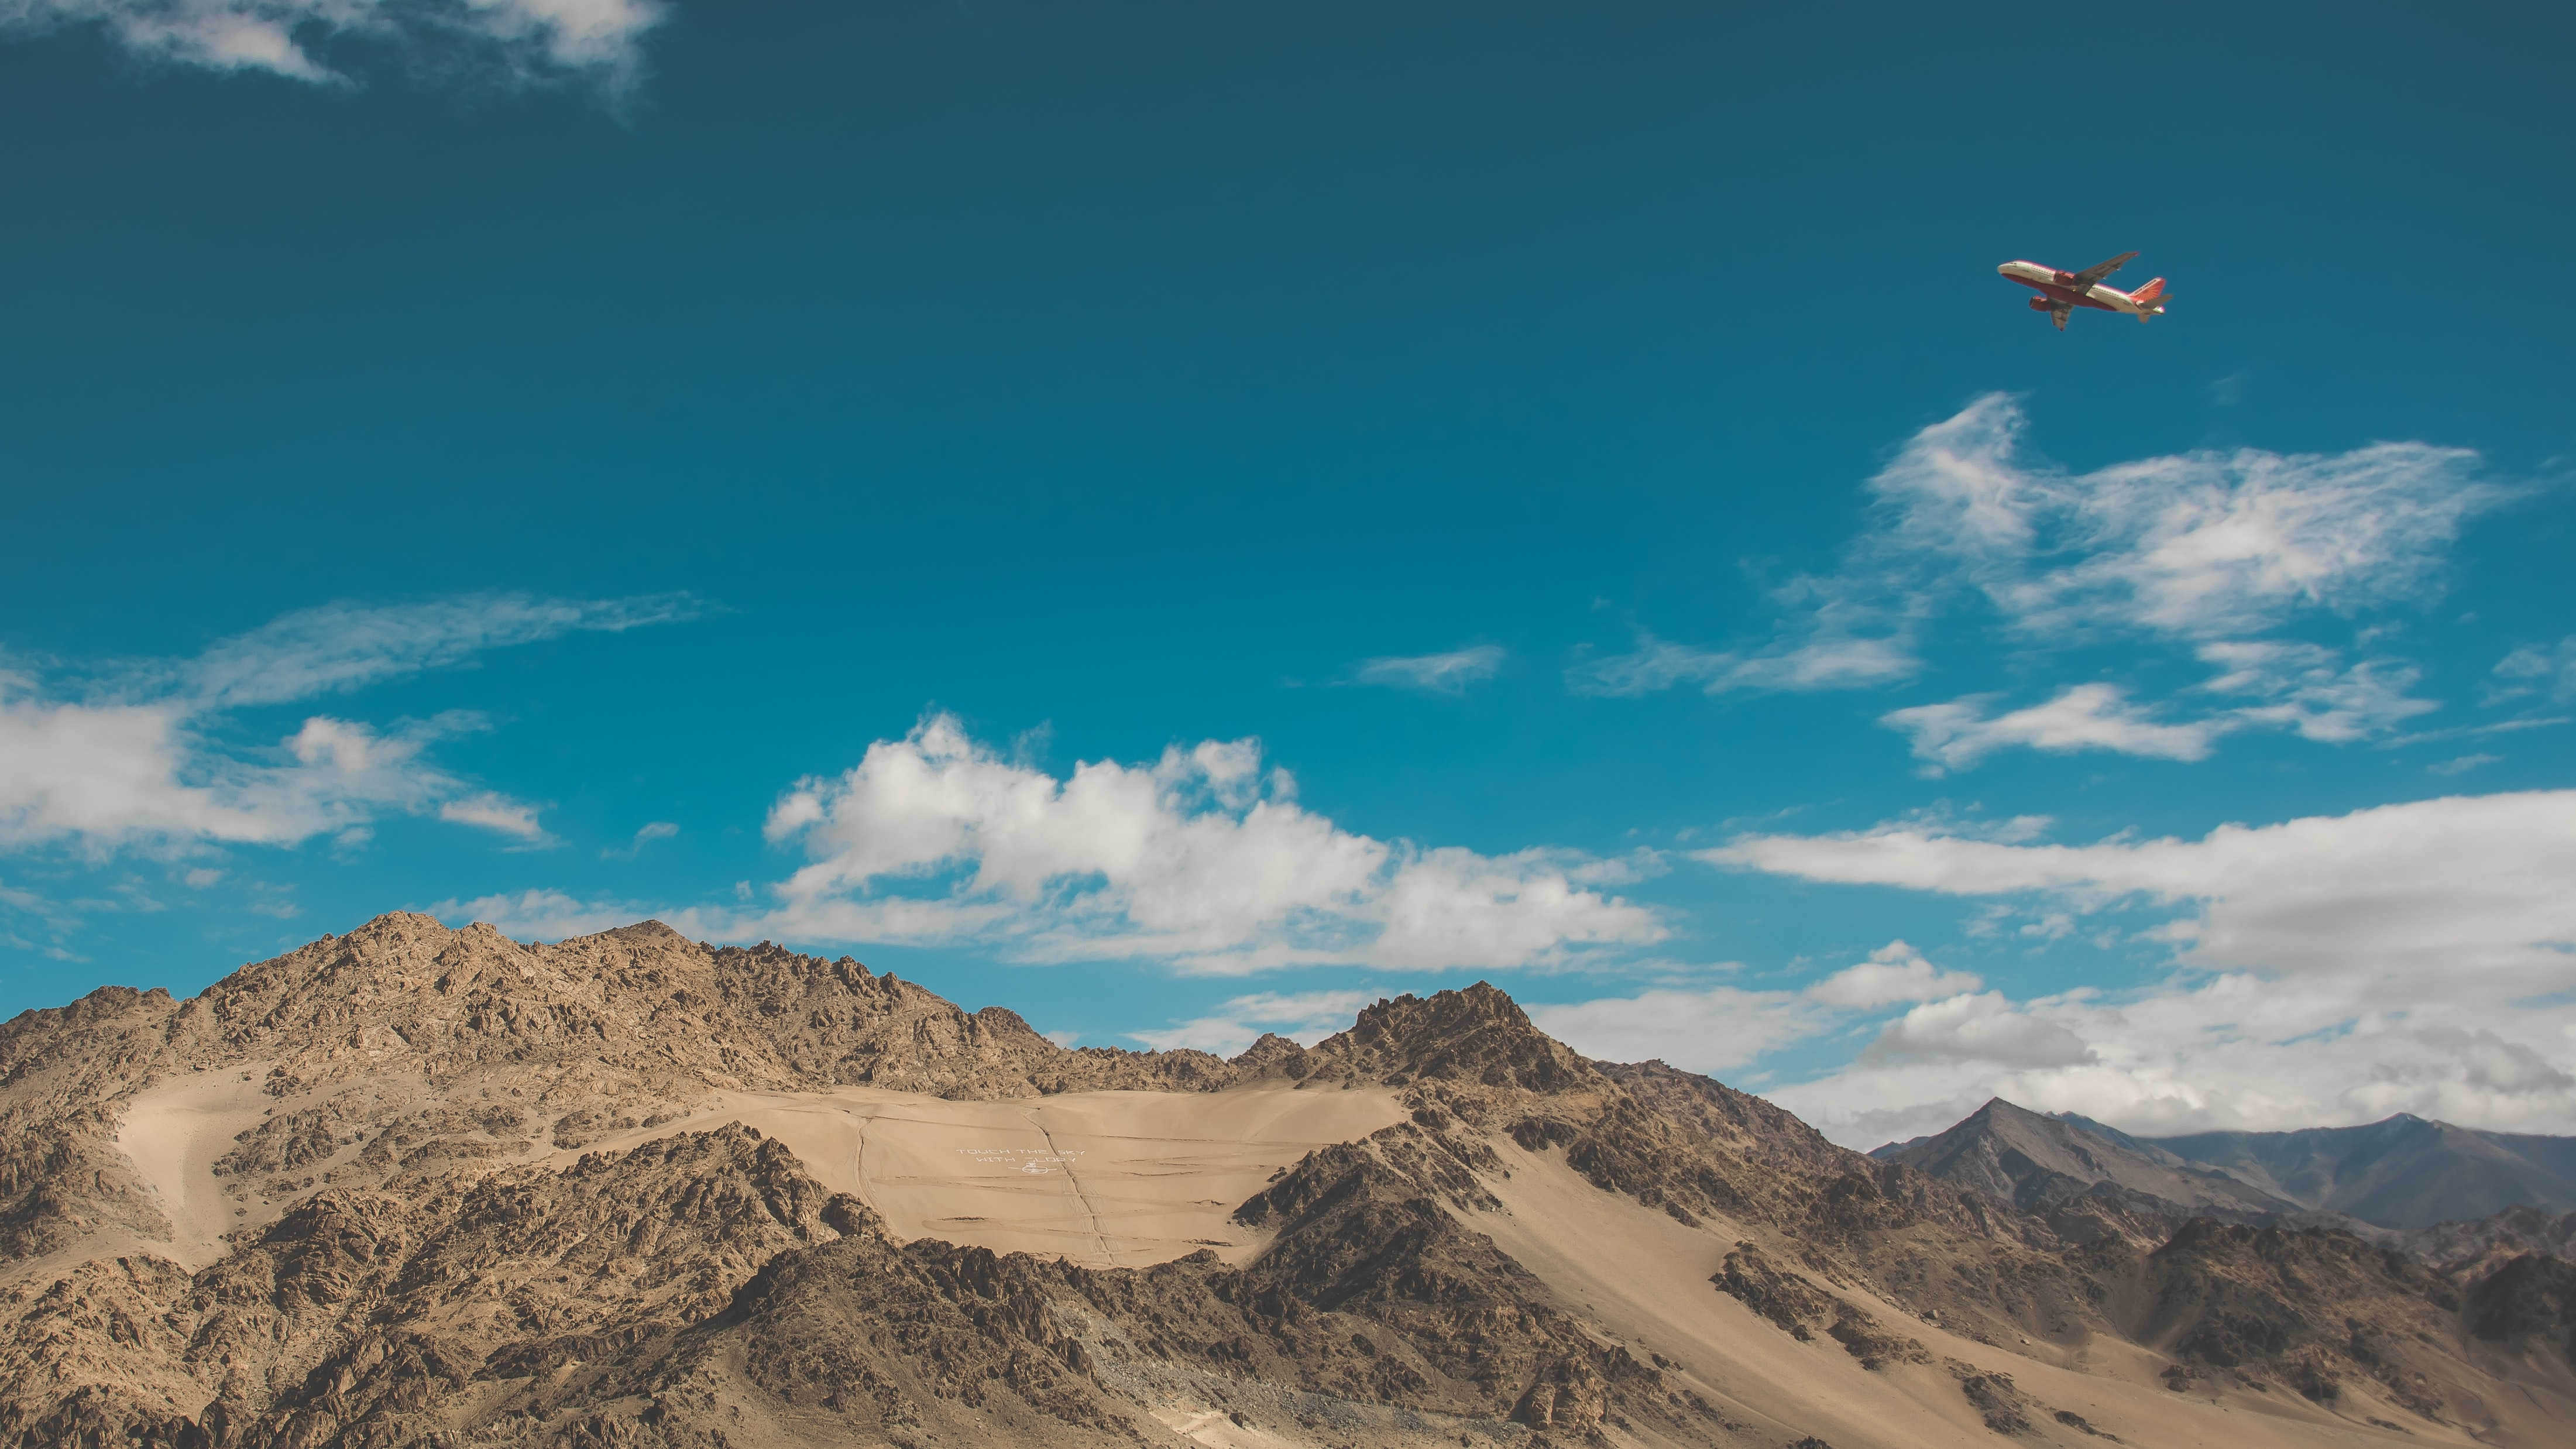 An airplane in the sky over mountains in Northern India